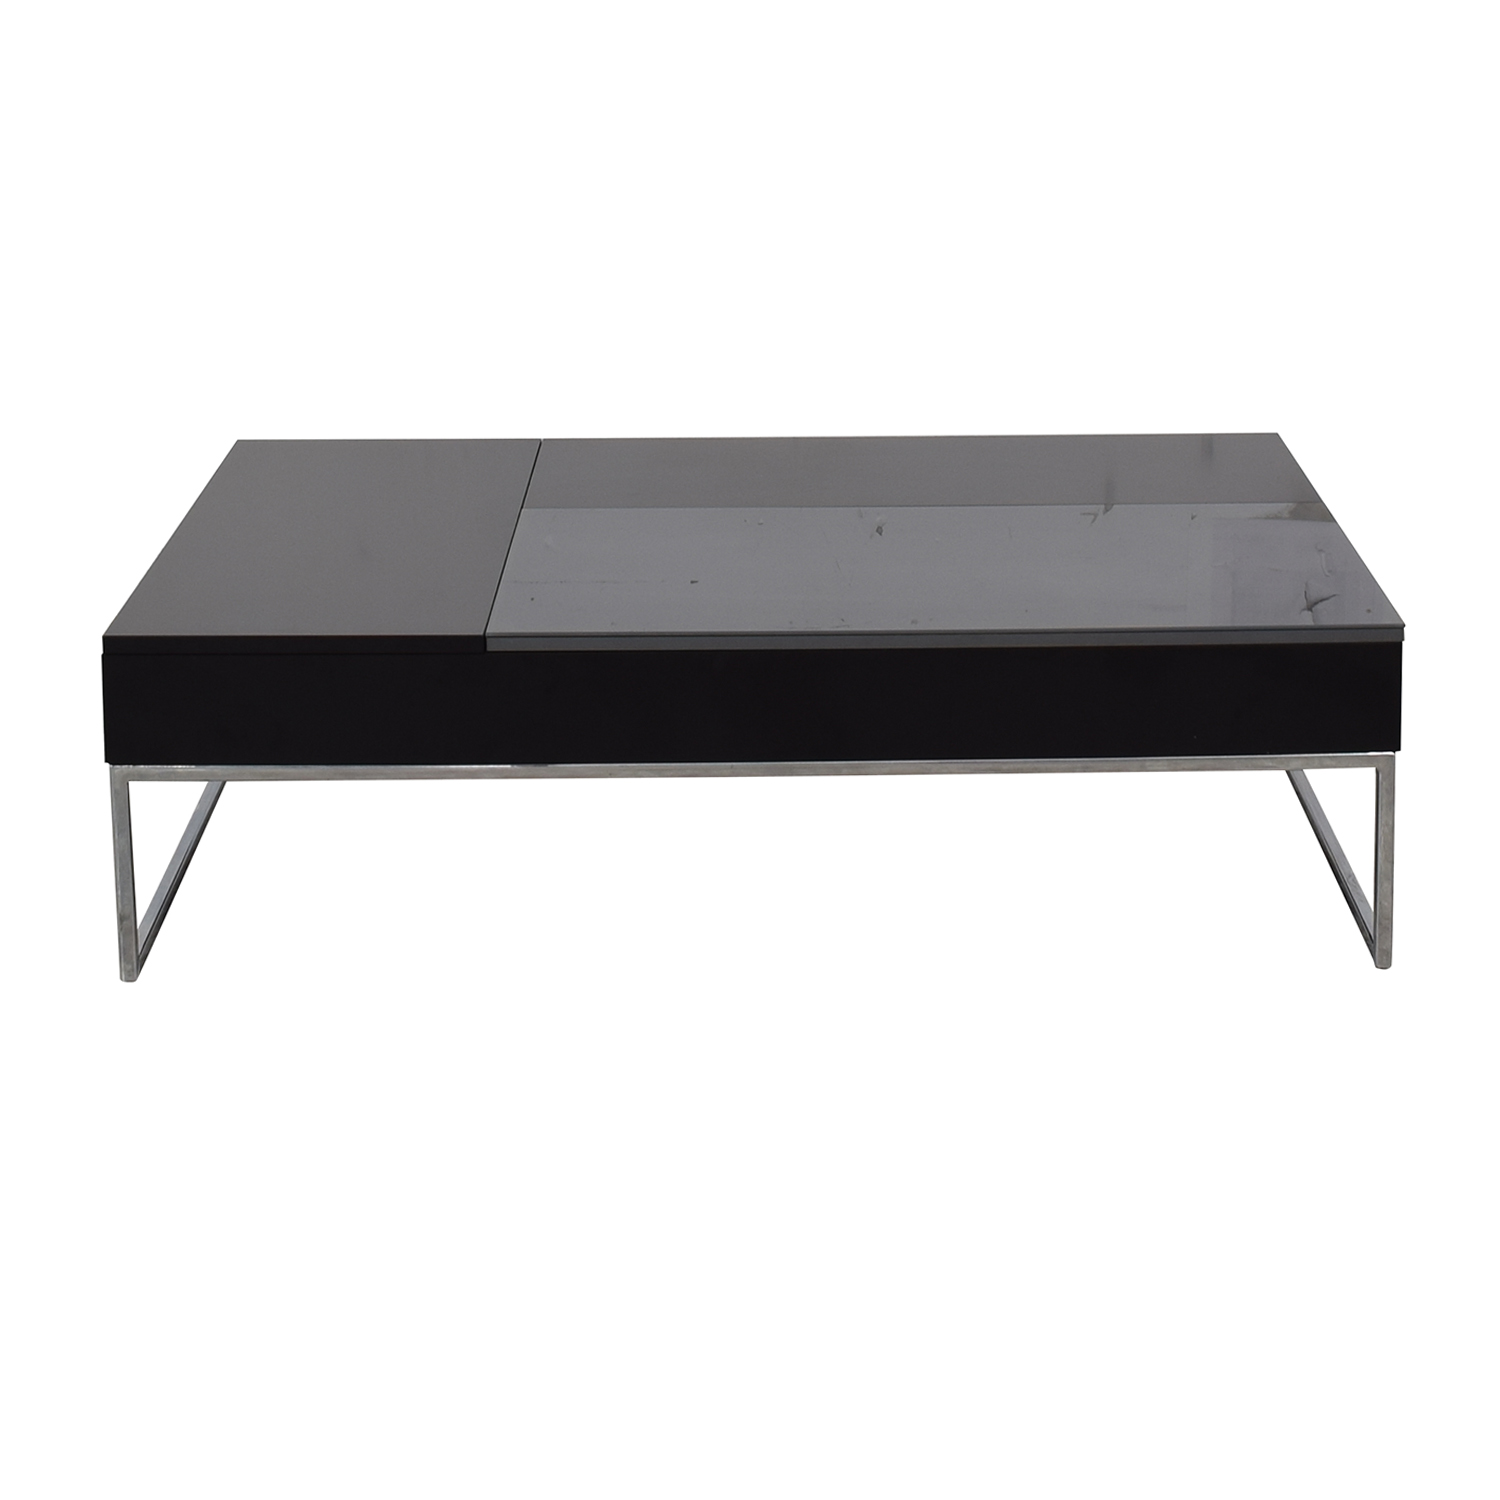 BoConcept BoConcept Chiva Coffee Table With Storage on sale